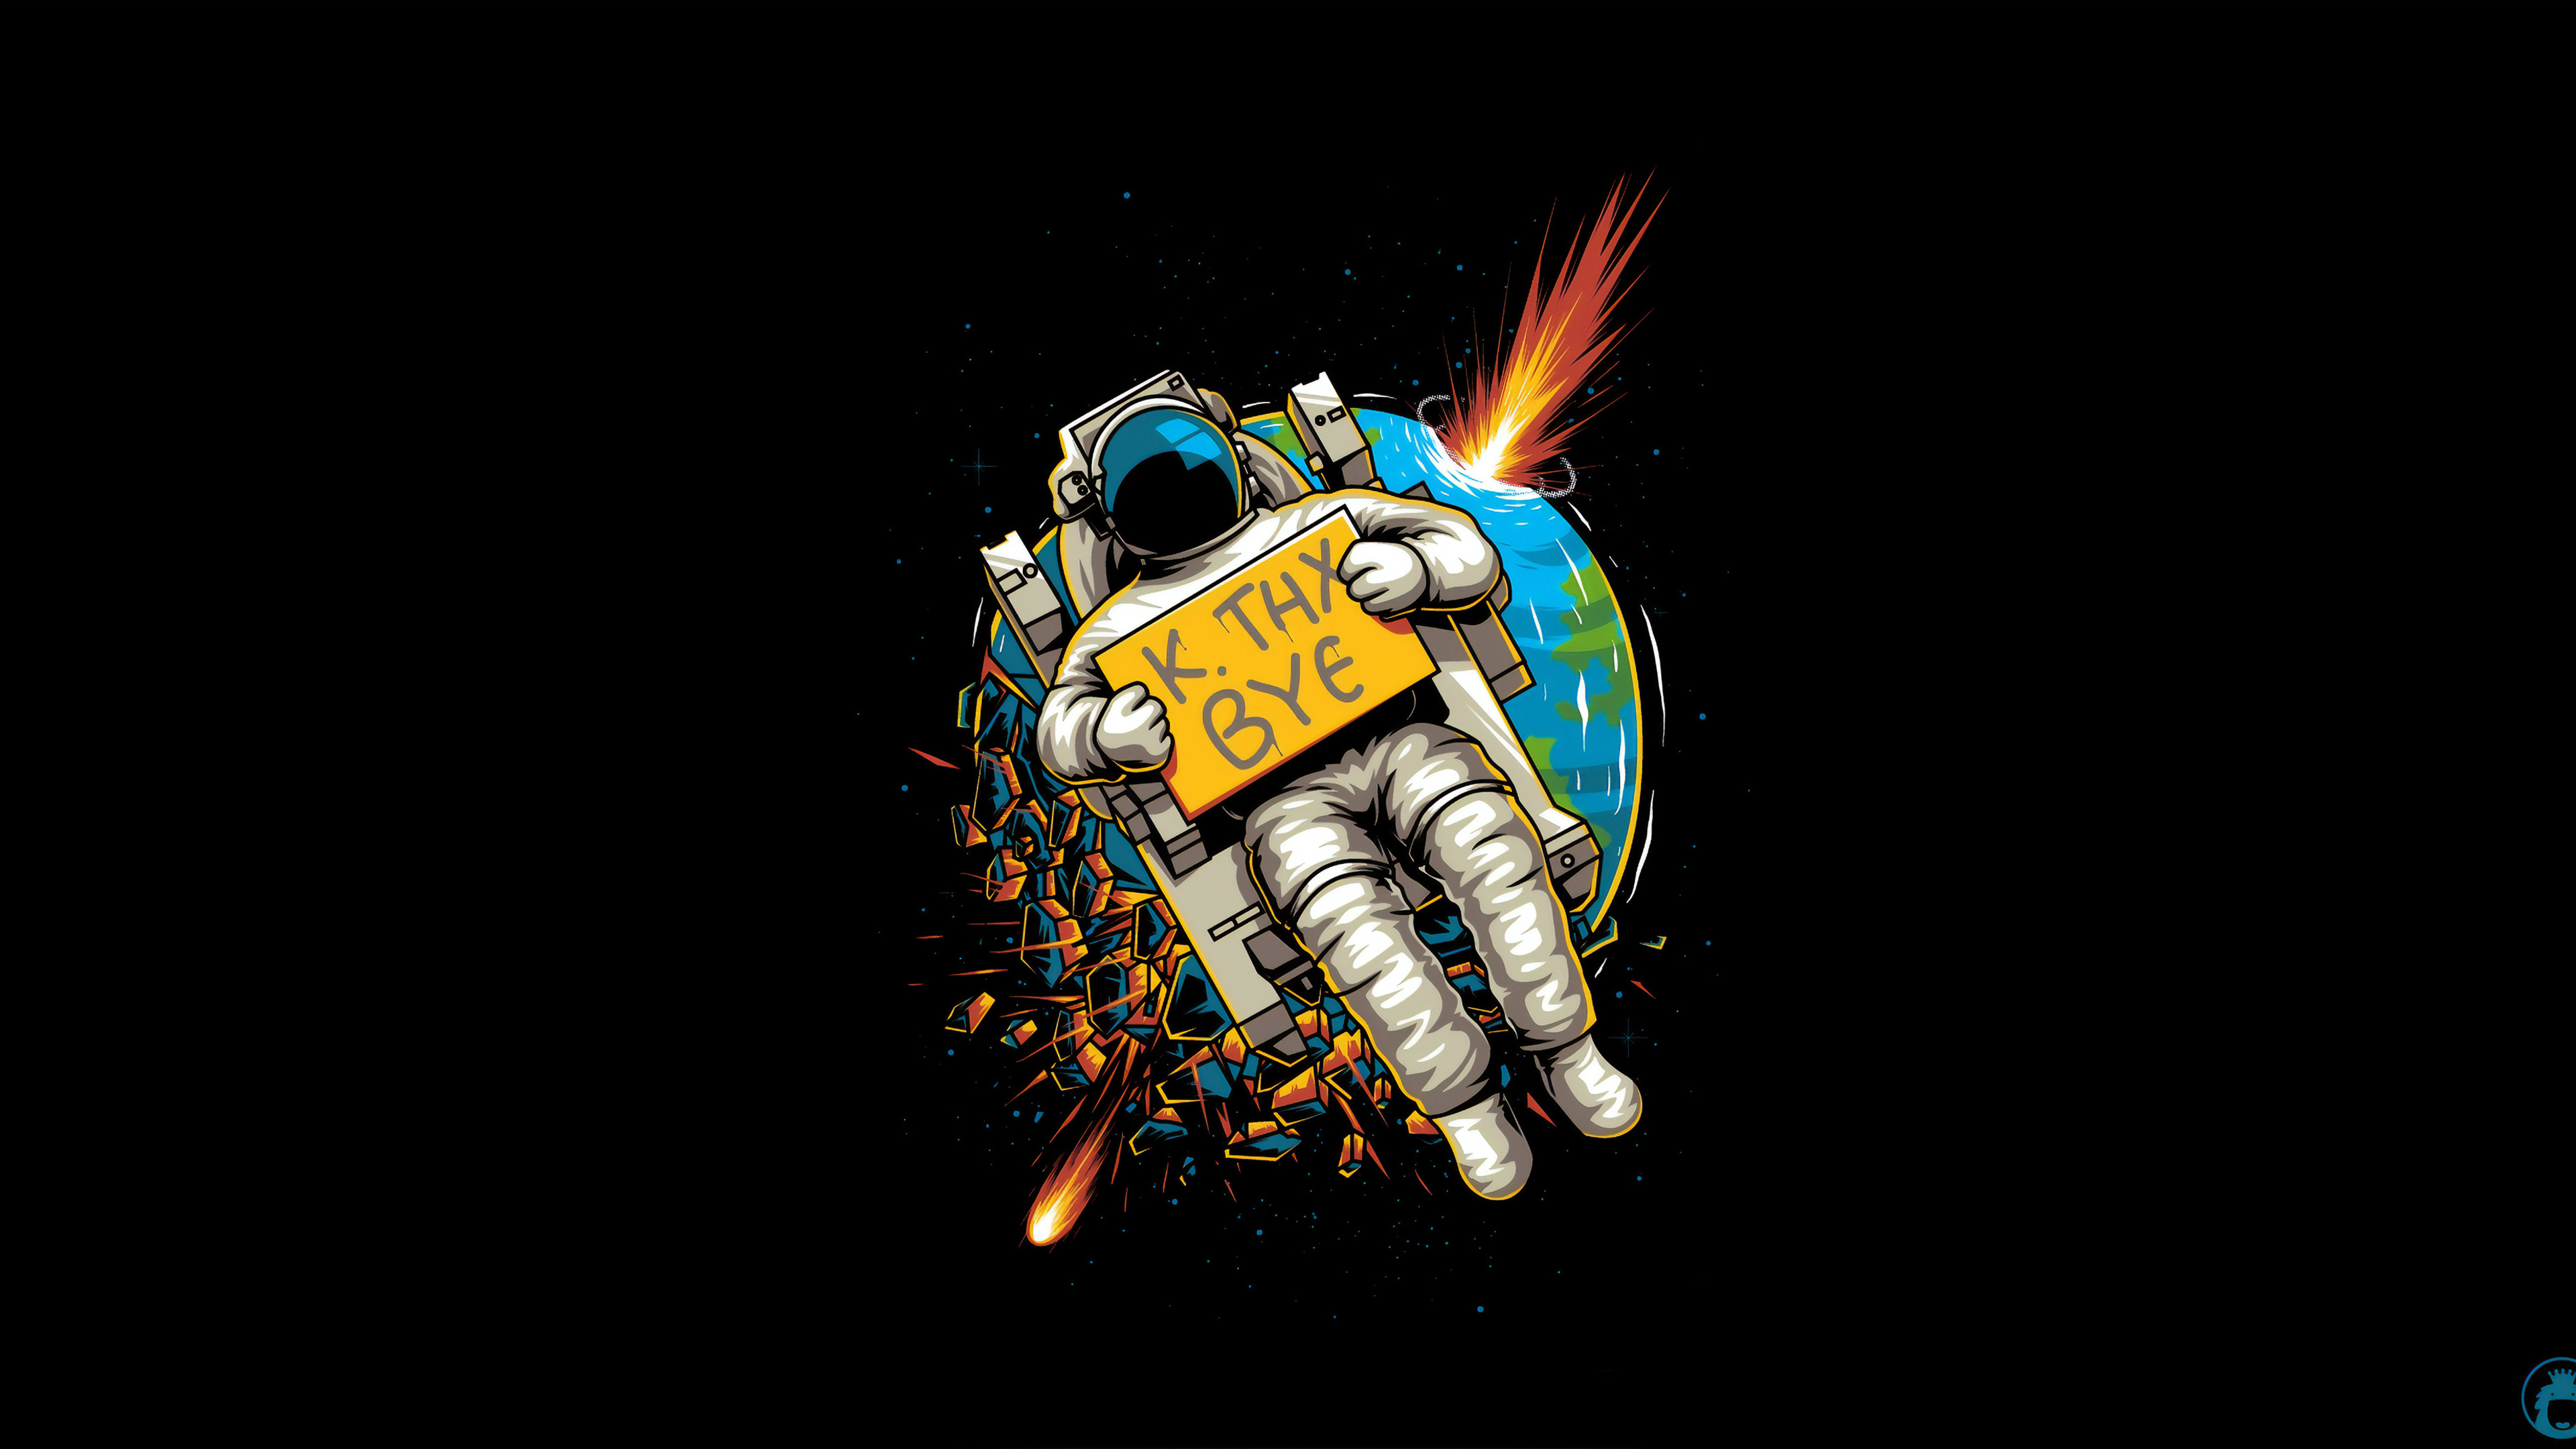 Wallpaper 4k Astronaut Okae Bye 4k Wallpapers Artist